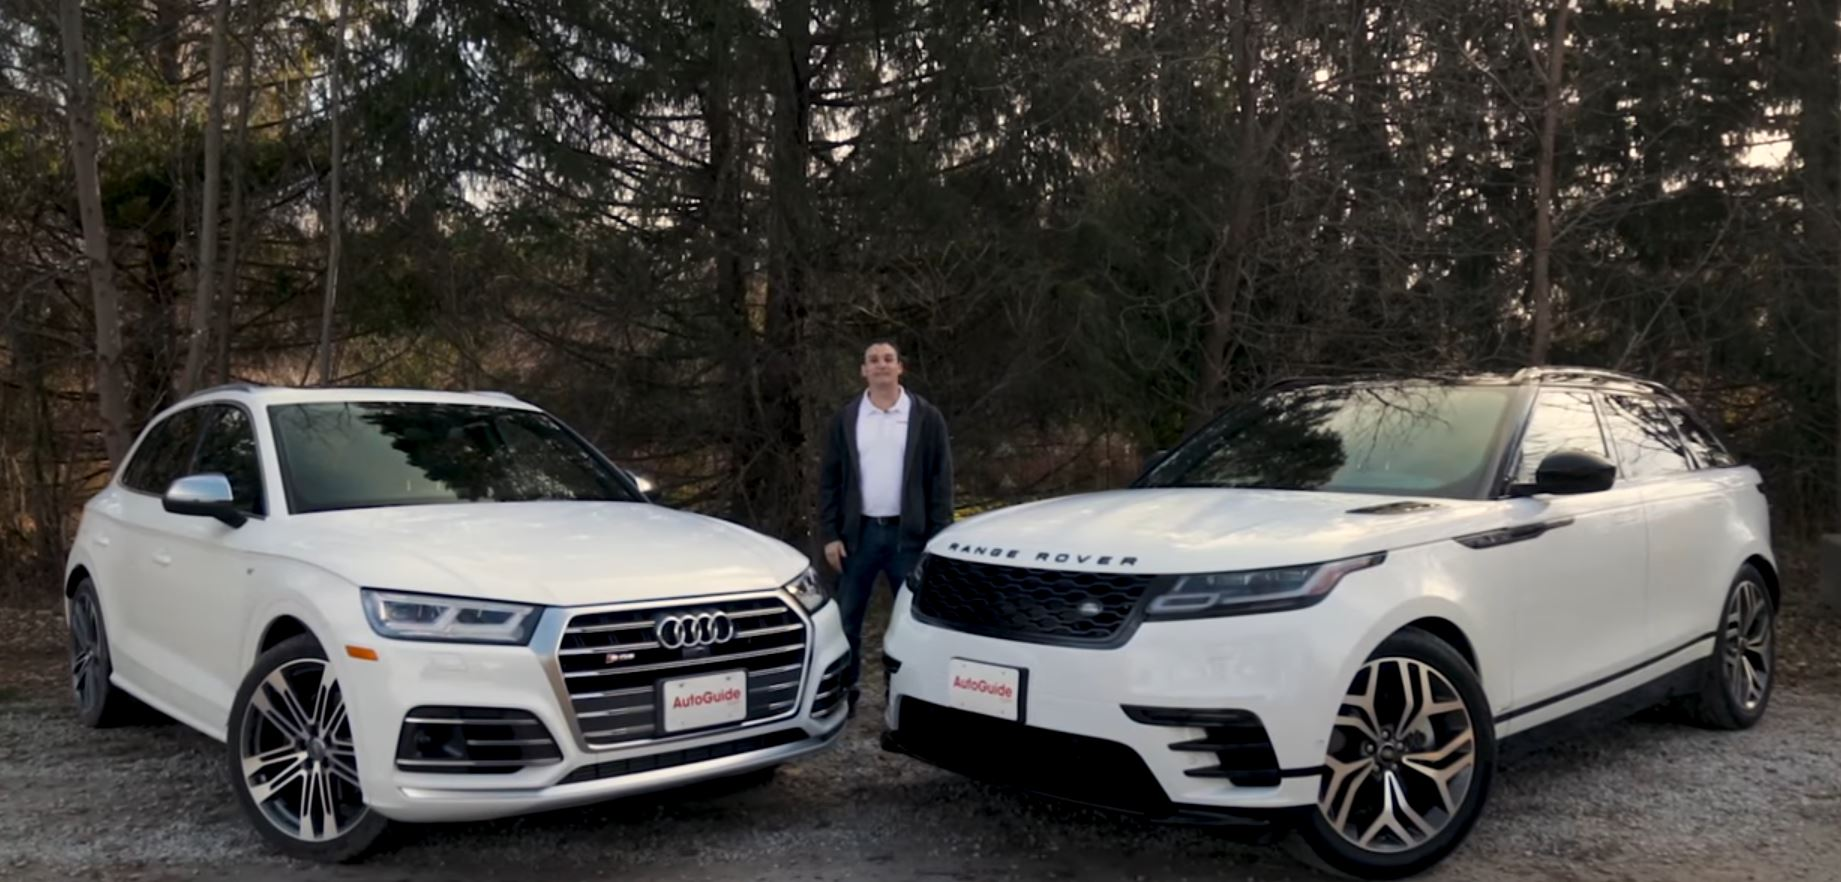 Range Rover Velar Takes On Audi Sq5 In Luxury Suv Shootout